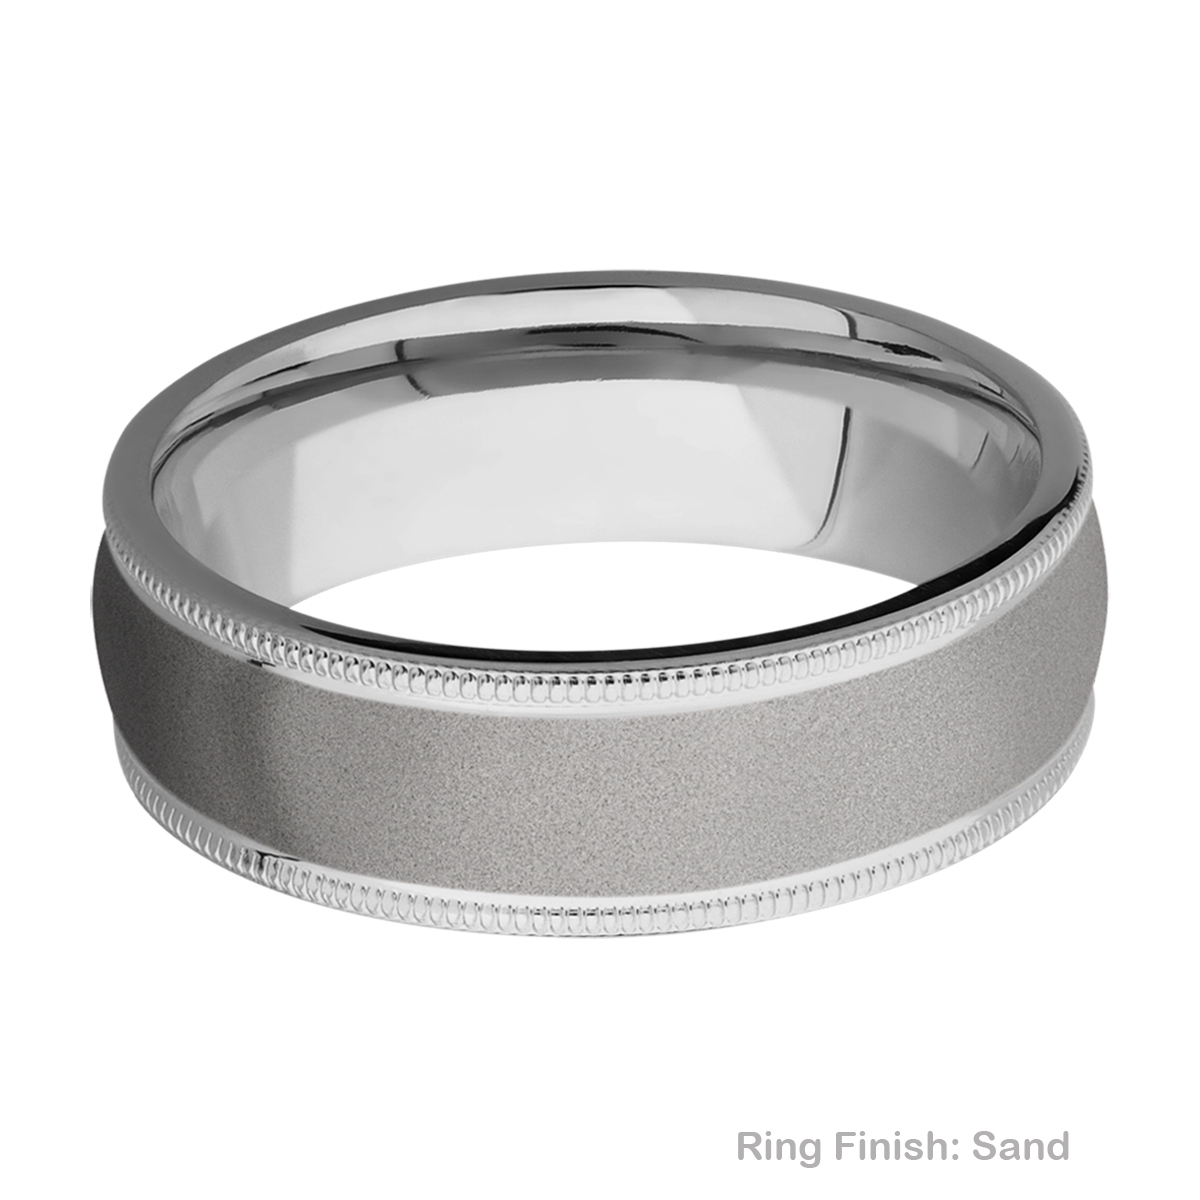 Lashbrook 7DMIL Titanium Wedding Ring or Band Alternative View 4